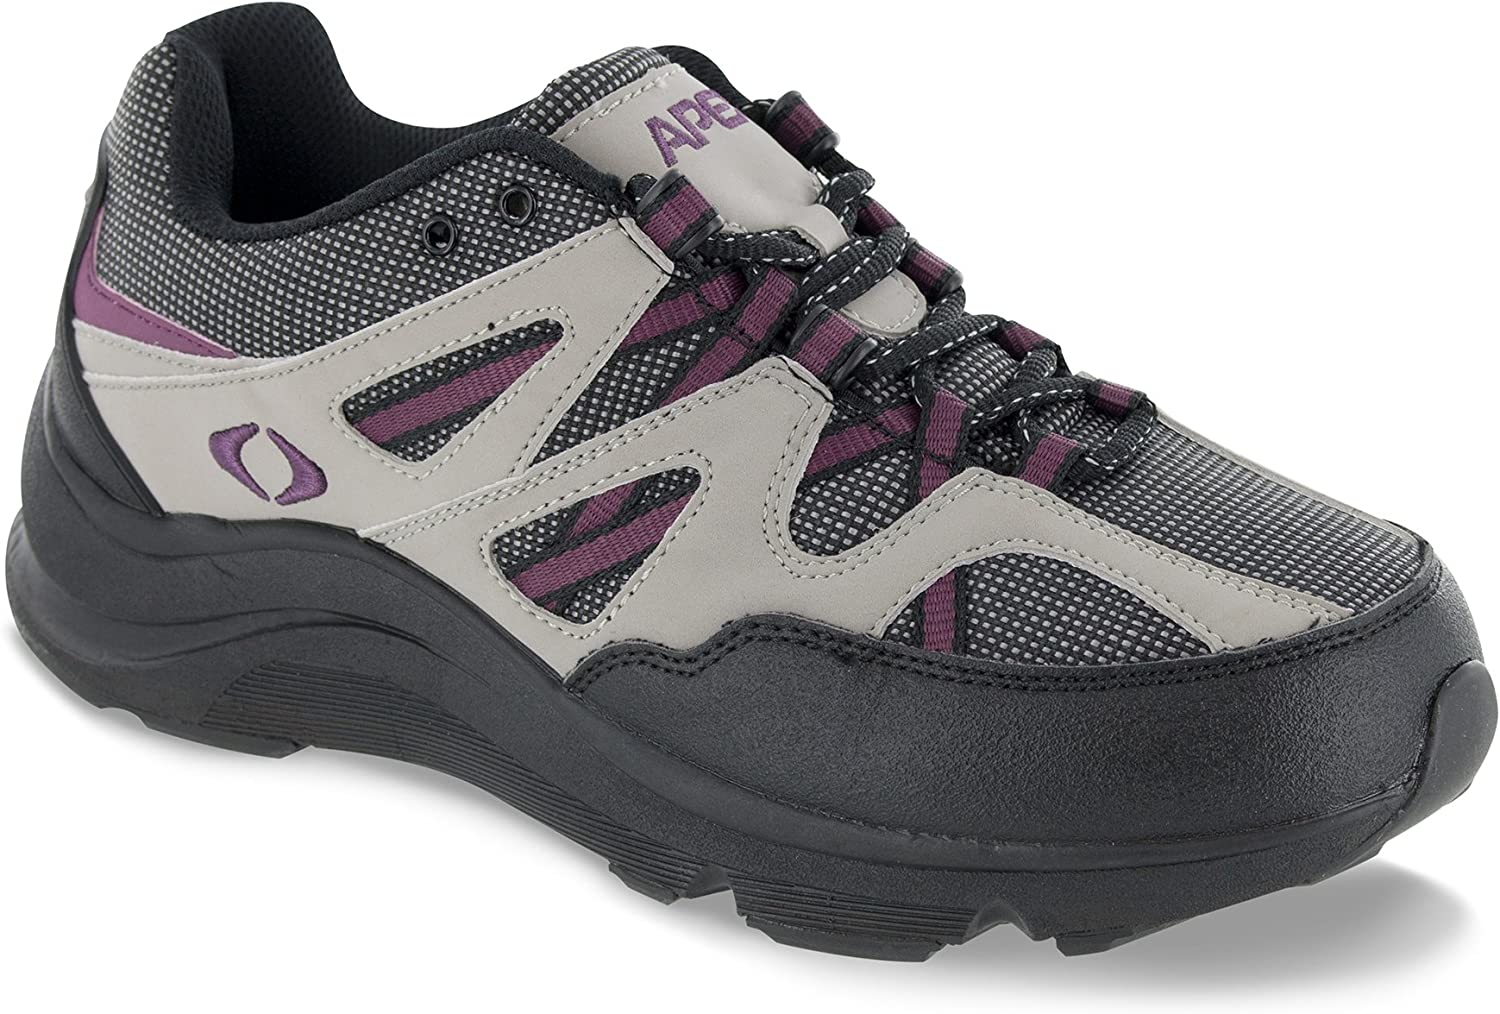 Apex Women s Sierra Trail Runner Hiking Shoe Sneaker